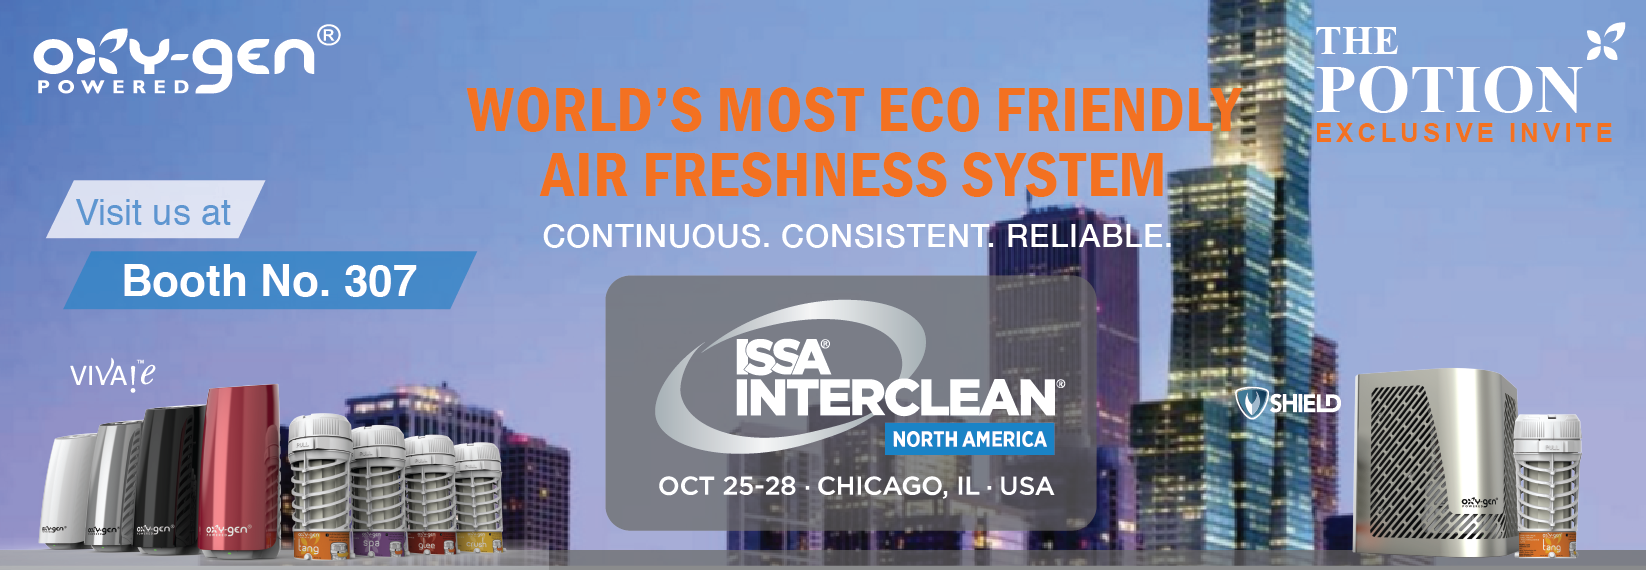 ISSA Interclean North America, Chicago 25-28 October 2016